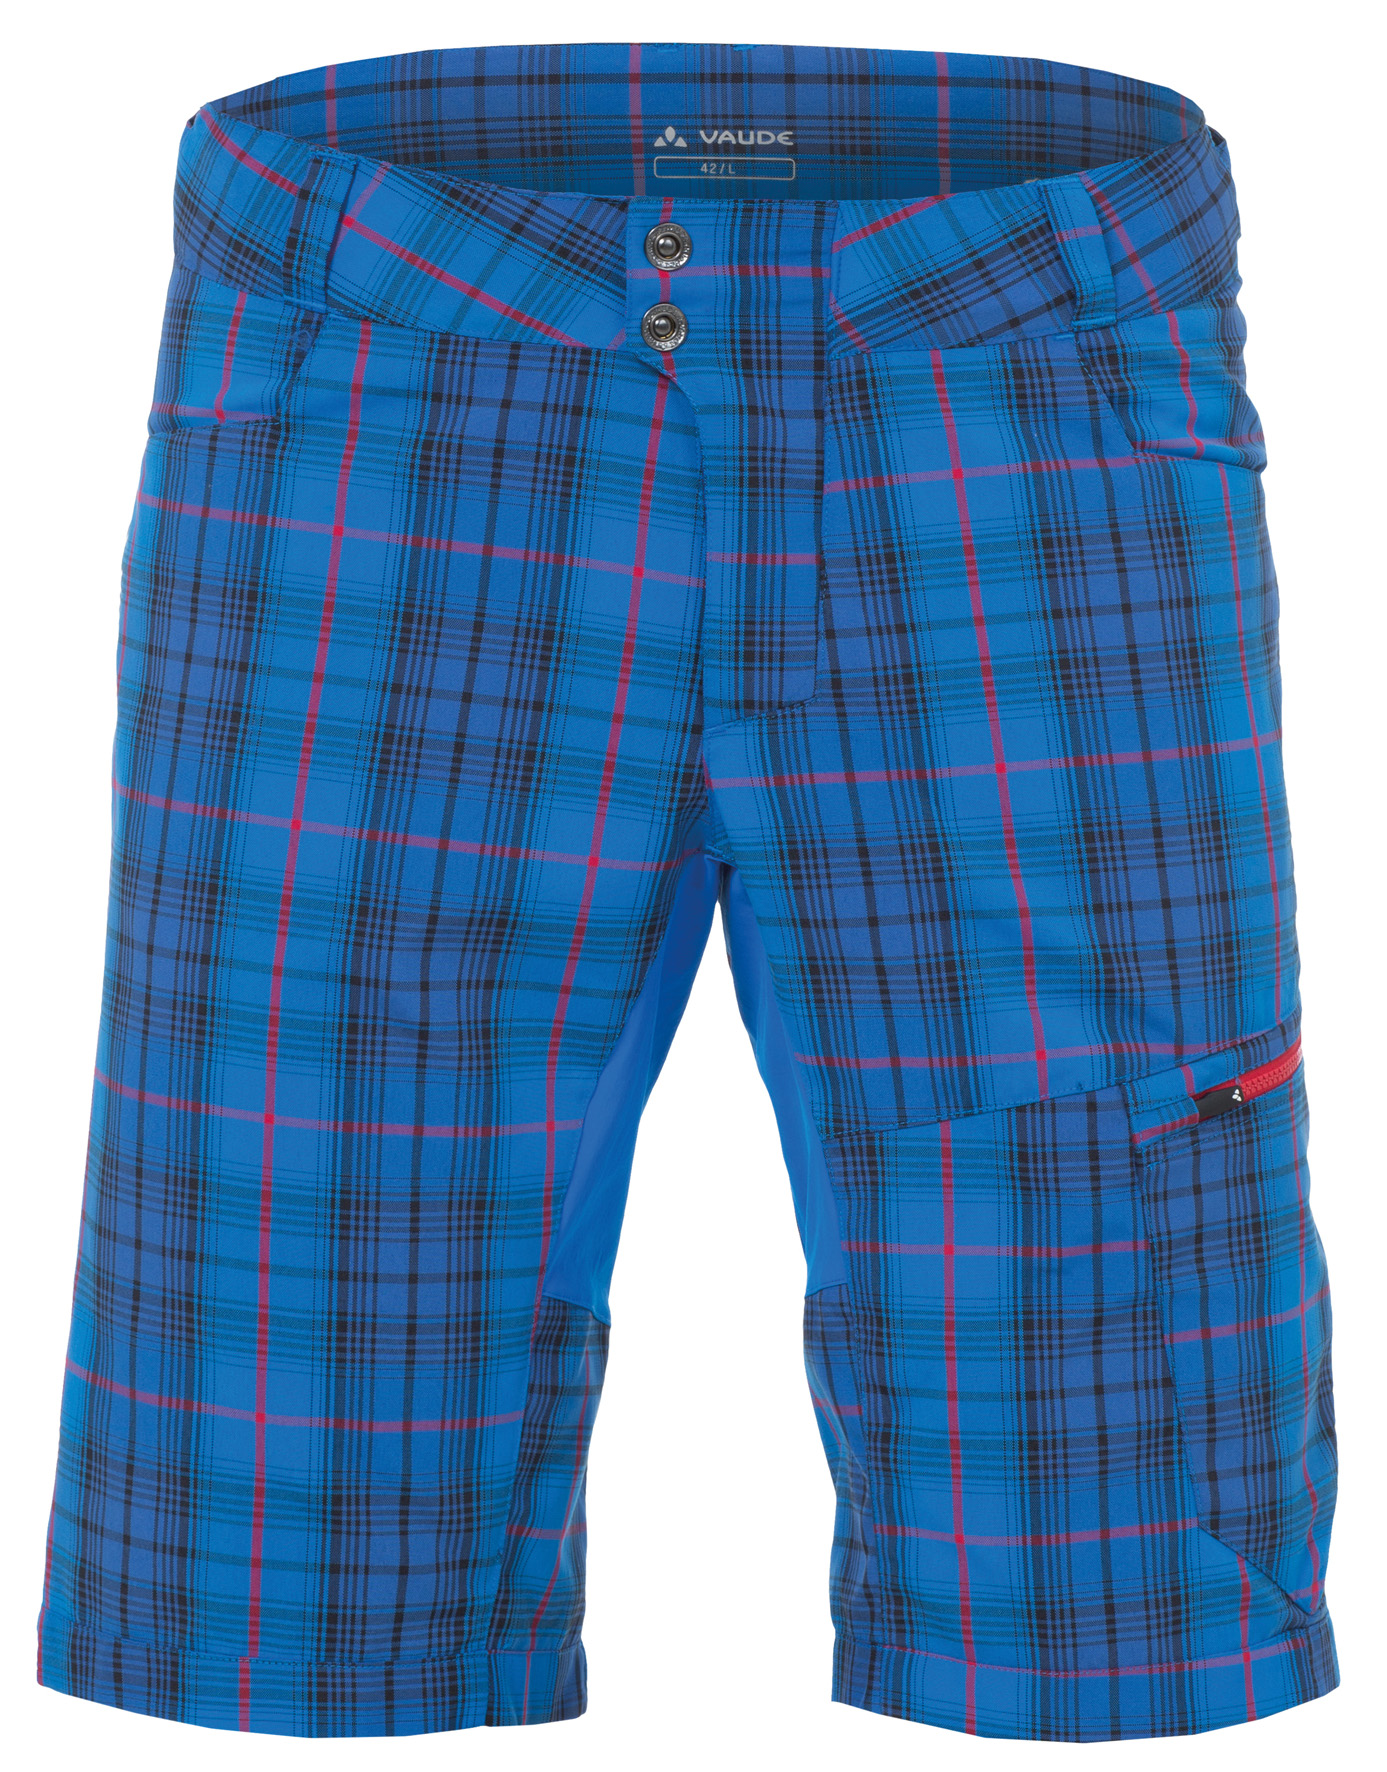 Men´s Craggy Pants II hydro blue Größe L - schneider-sports